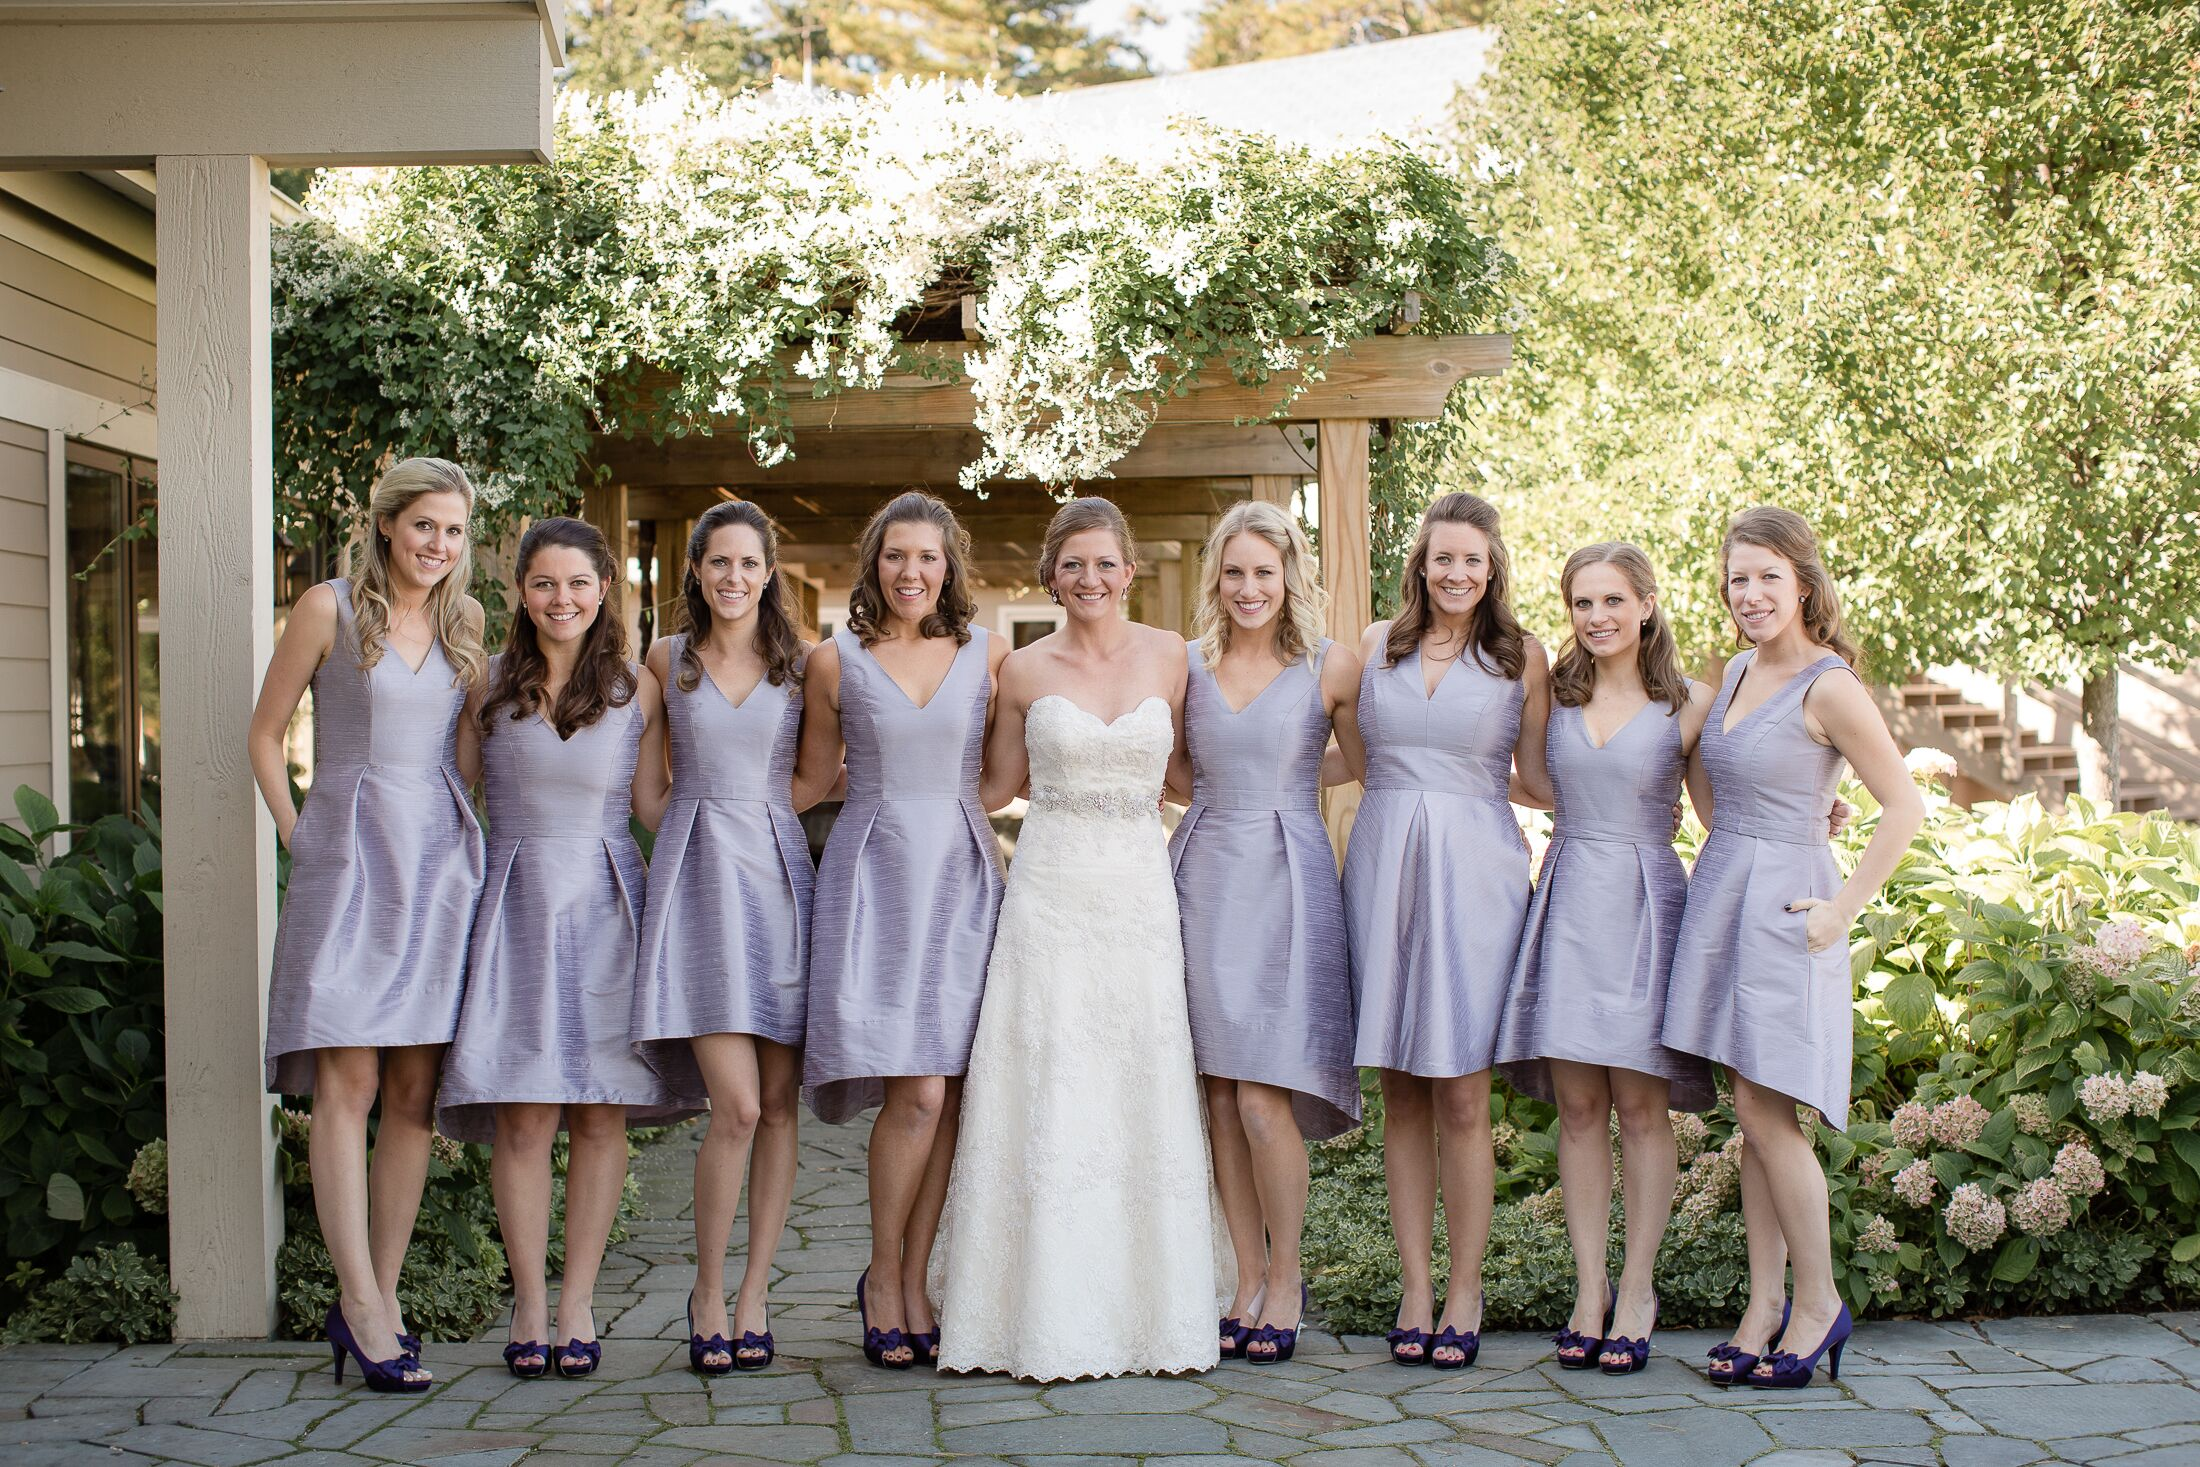 Alfred Sung Jubilee Bridesmaid Dresses